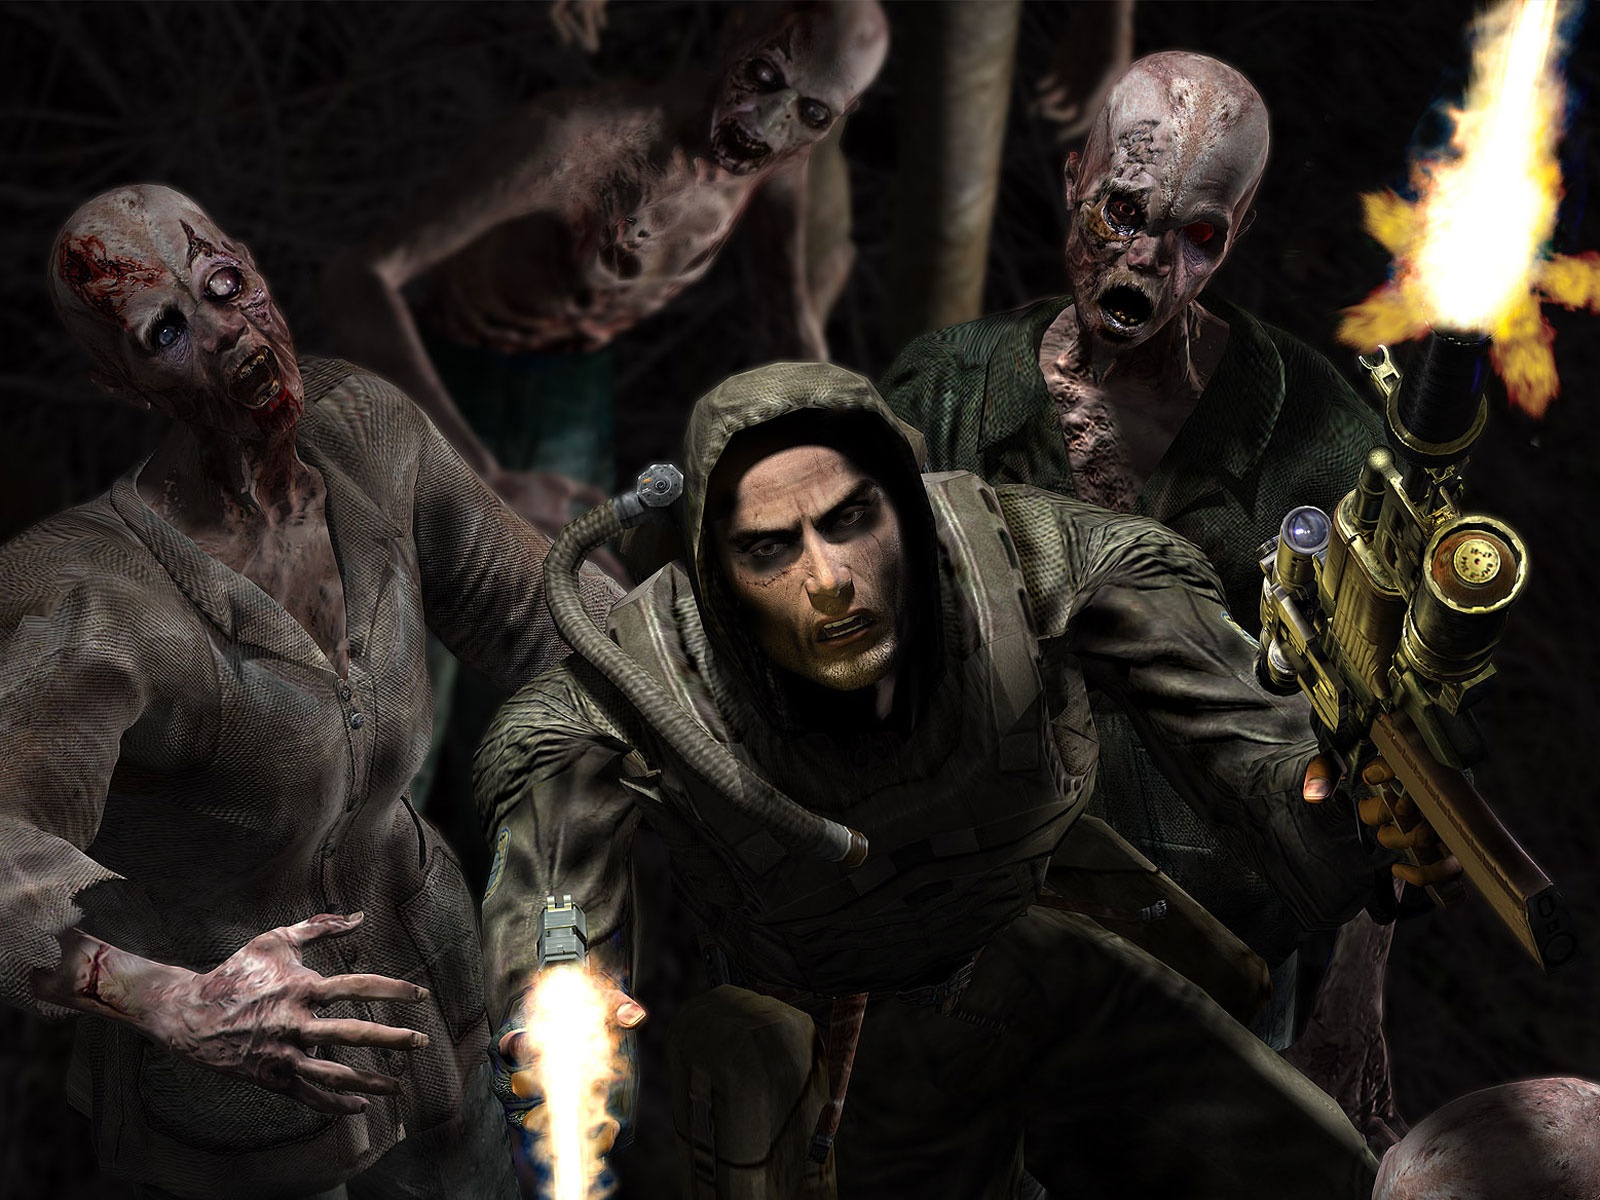 Scary Wallpaper   Zombie Scary Wallpapers 1600x1200